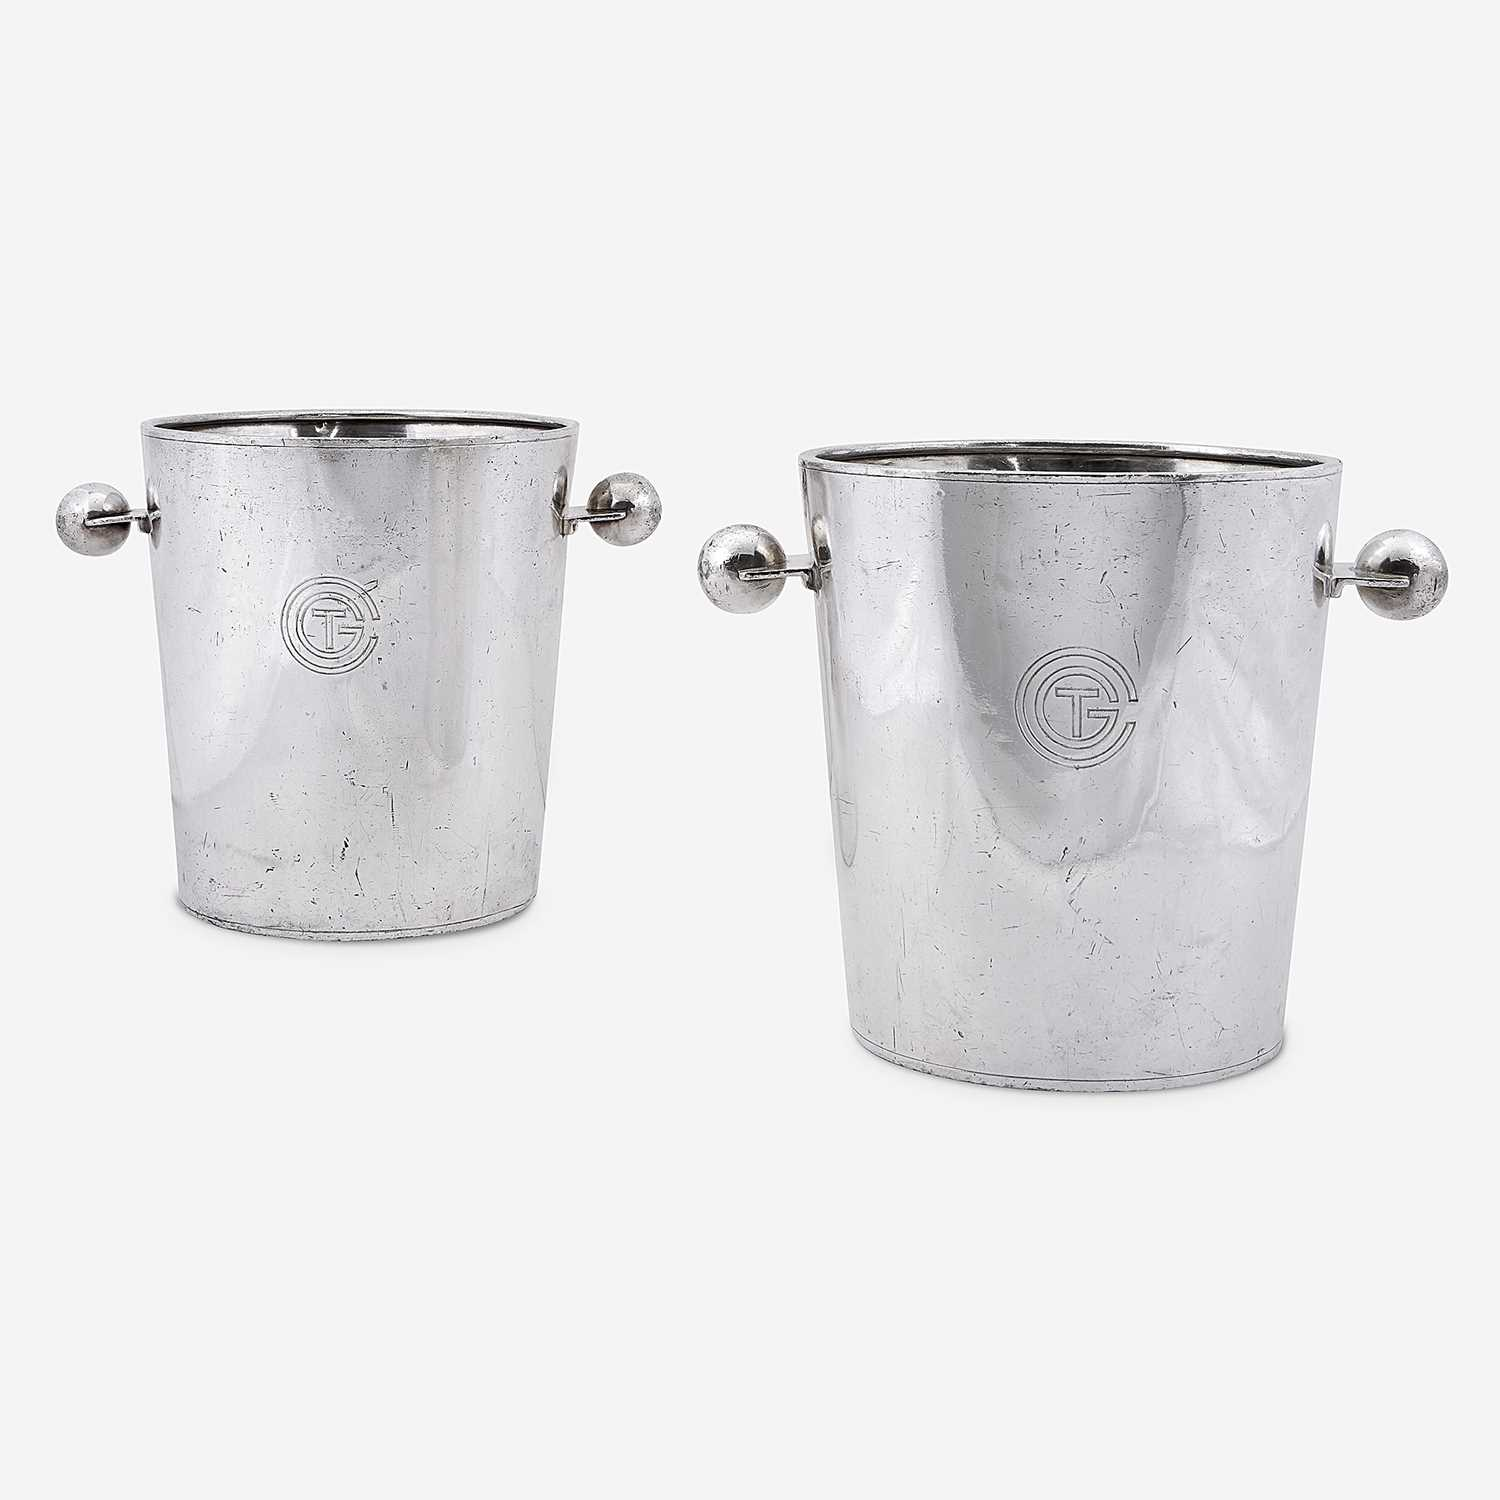 Lot 399 - A Pair of Silver-Plated 'Transat' Champagne Buckets from the S.S. Normandie